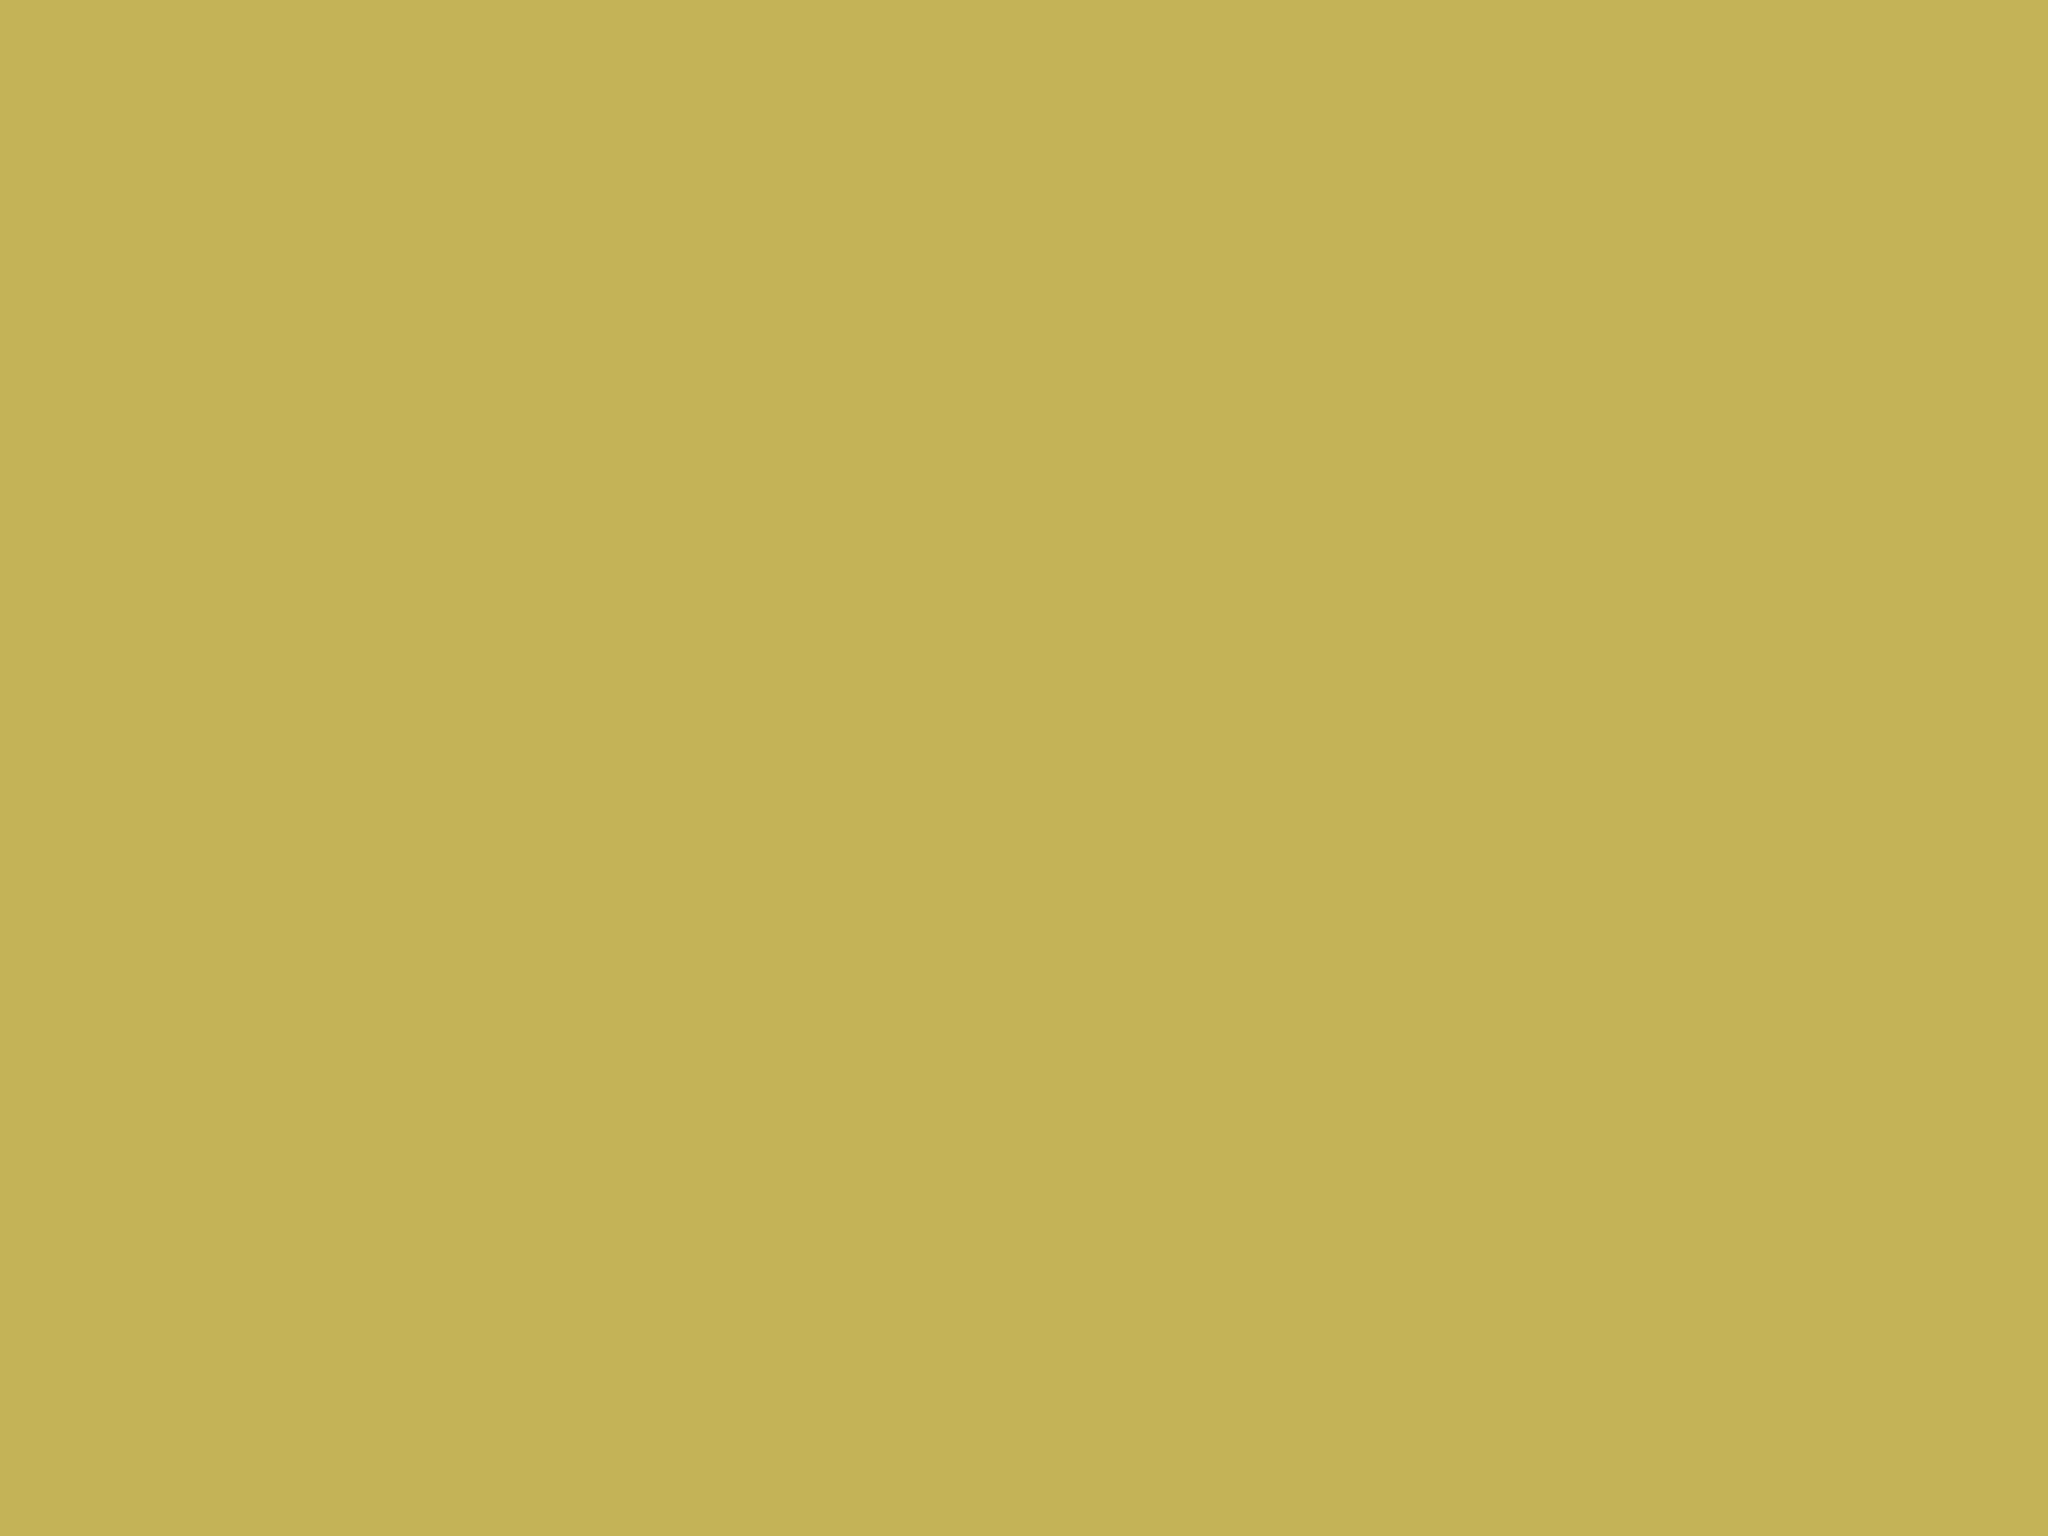 2048x1536 Vegas Gold Solid Color Background